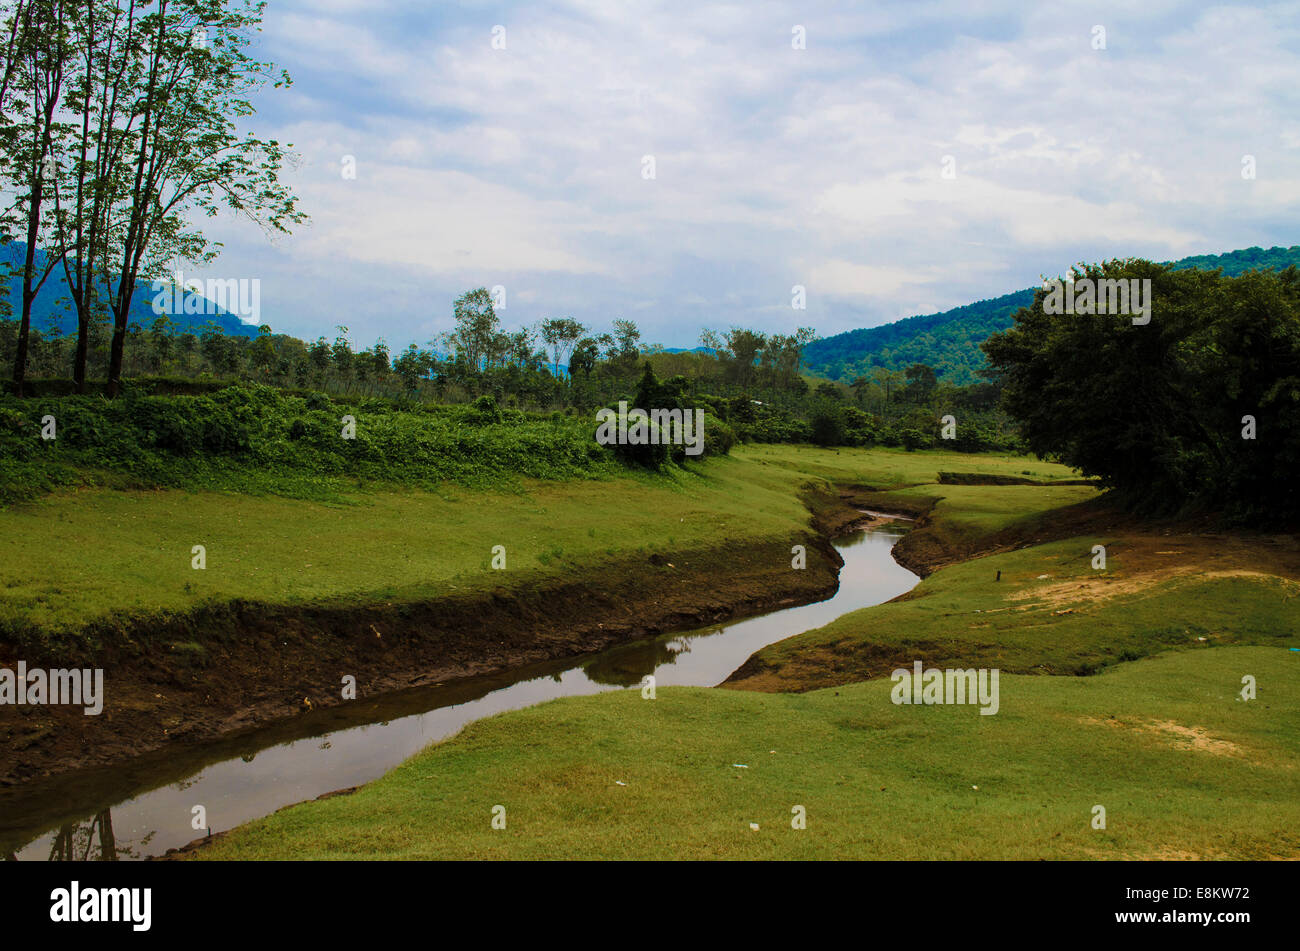 Periyar lake in Thattekad, Kerala, India - Stock Image